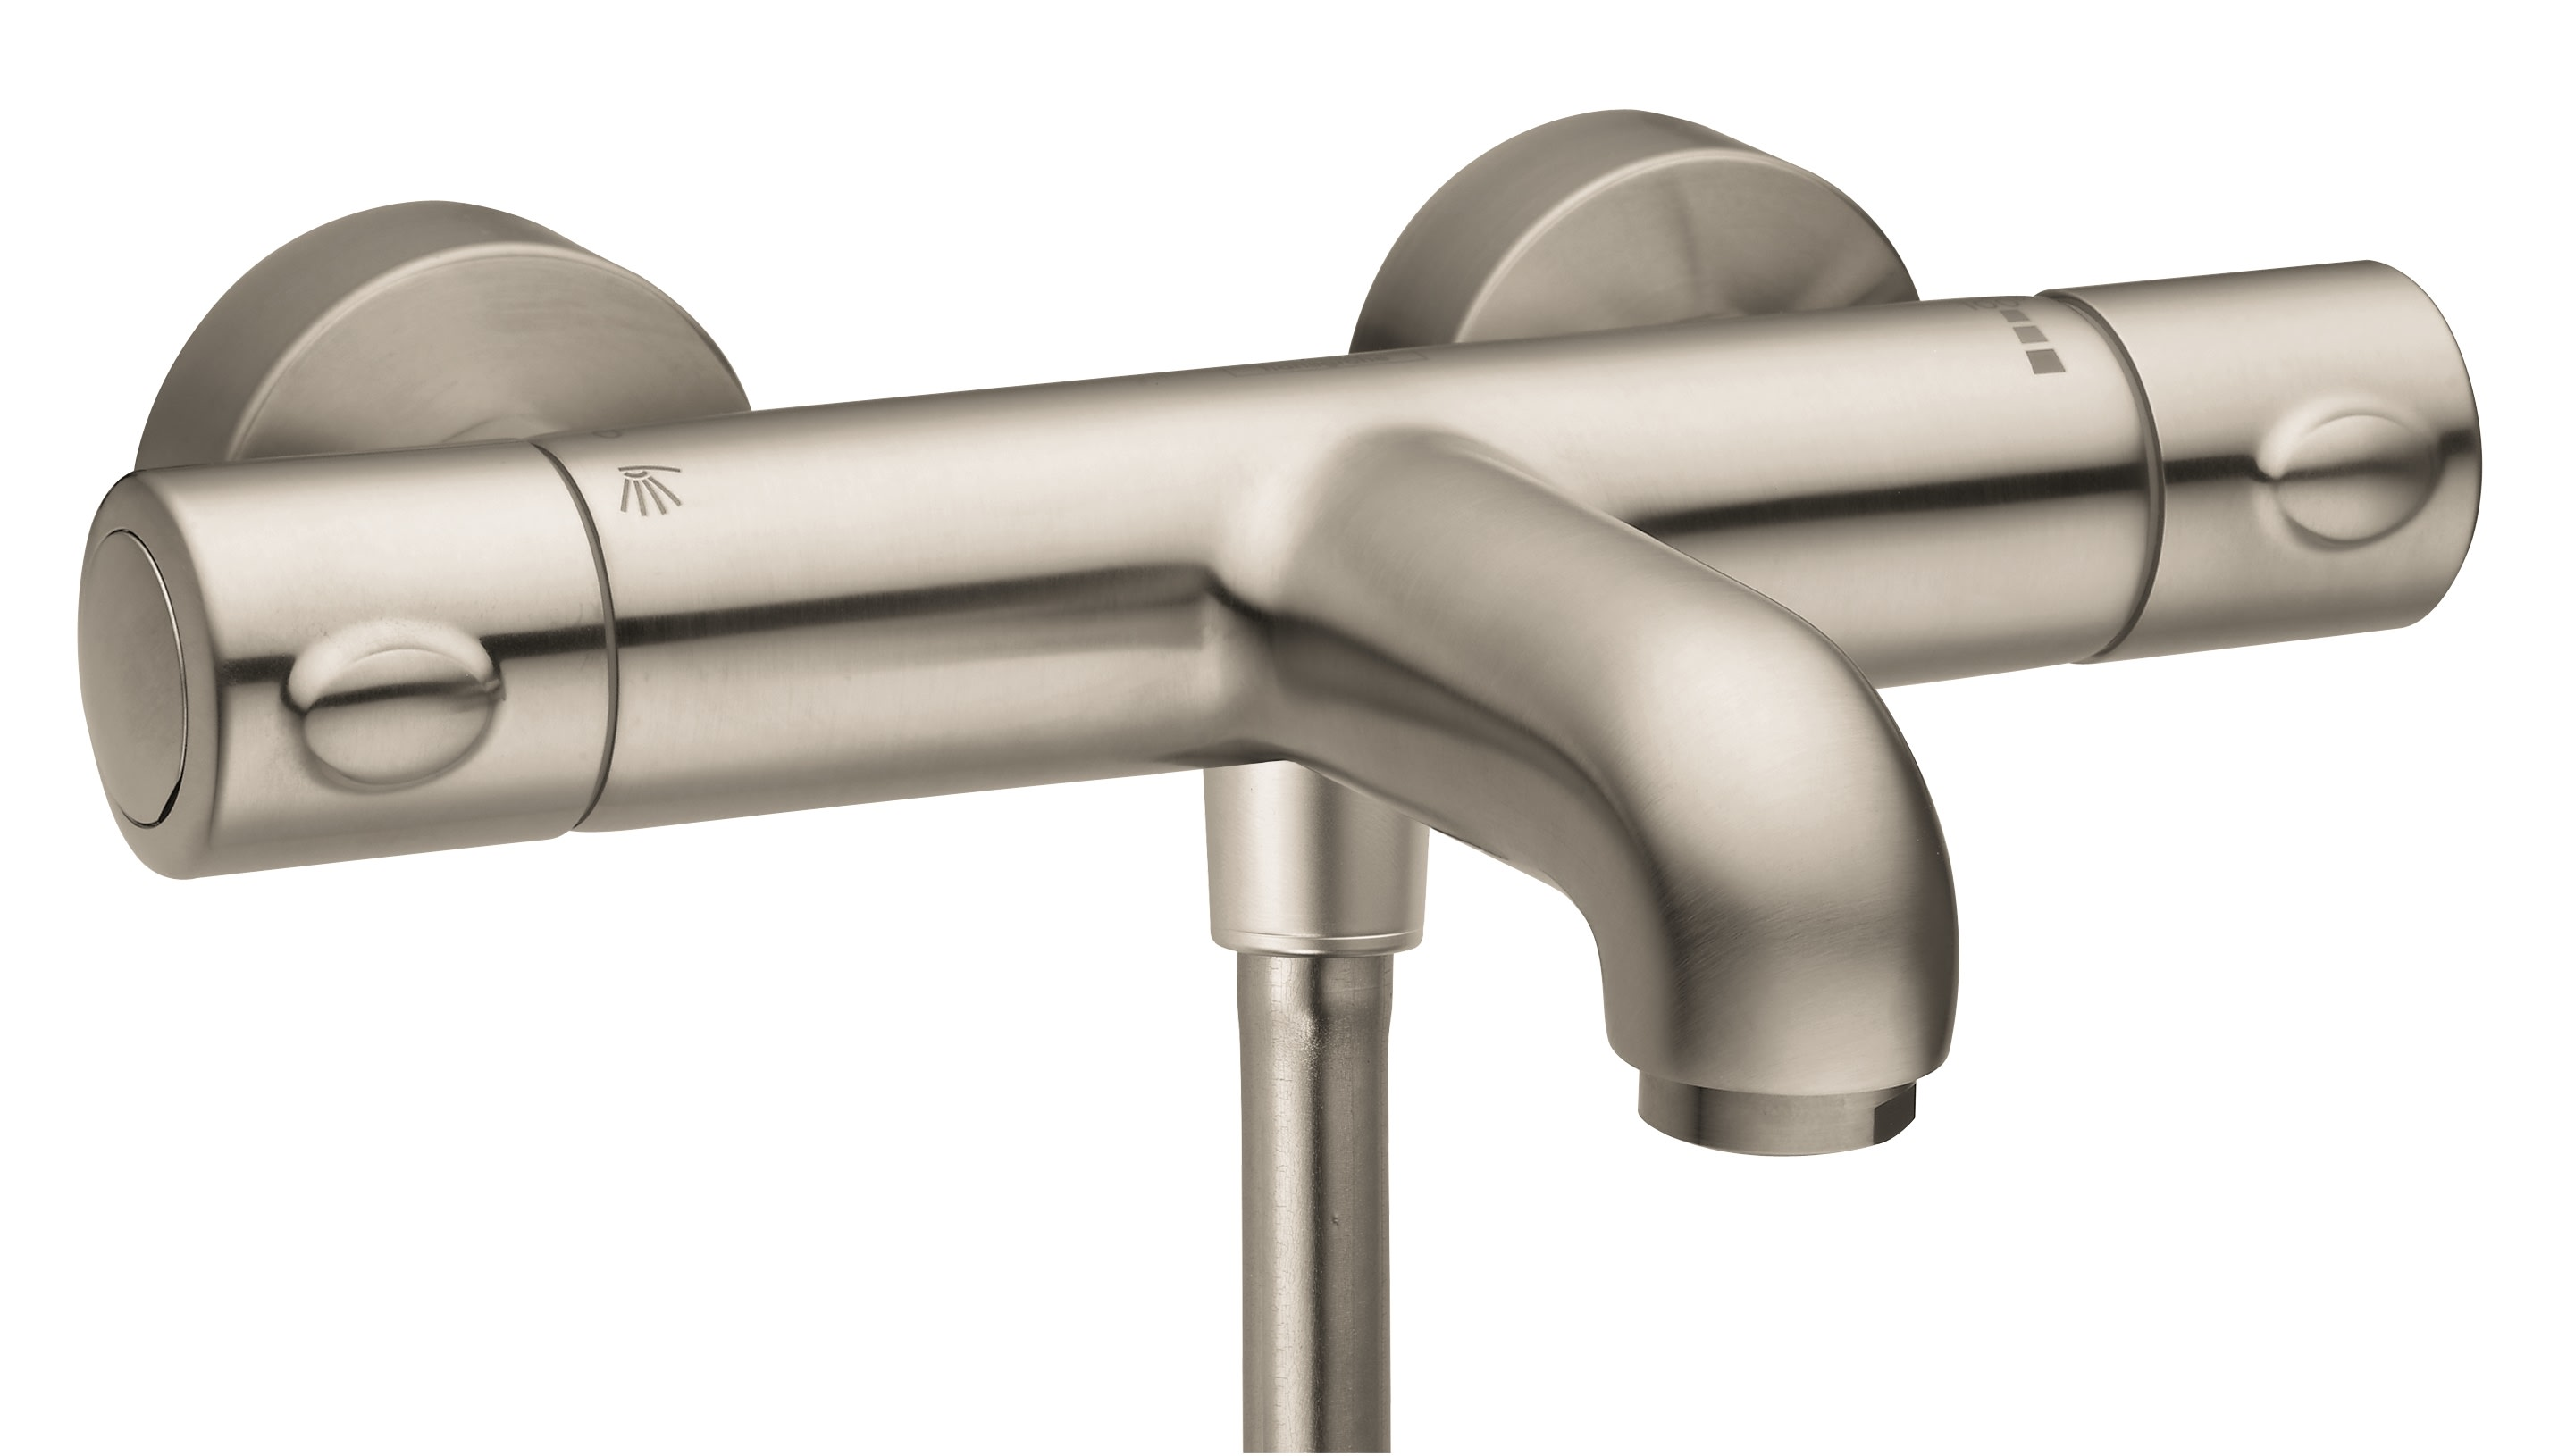 Hansgrohe 13241001 Chrome Showerpower Exposed Tub Shower Thermostat Active Bath And Faucet Filler With 1 2 In Hand Hose Connection